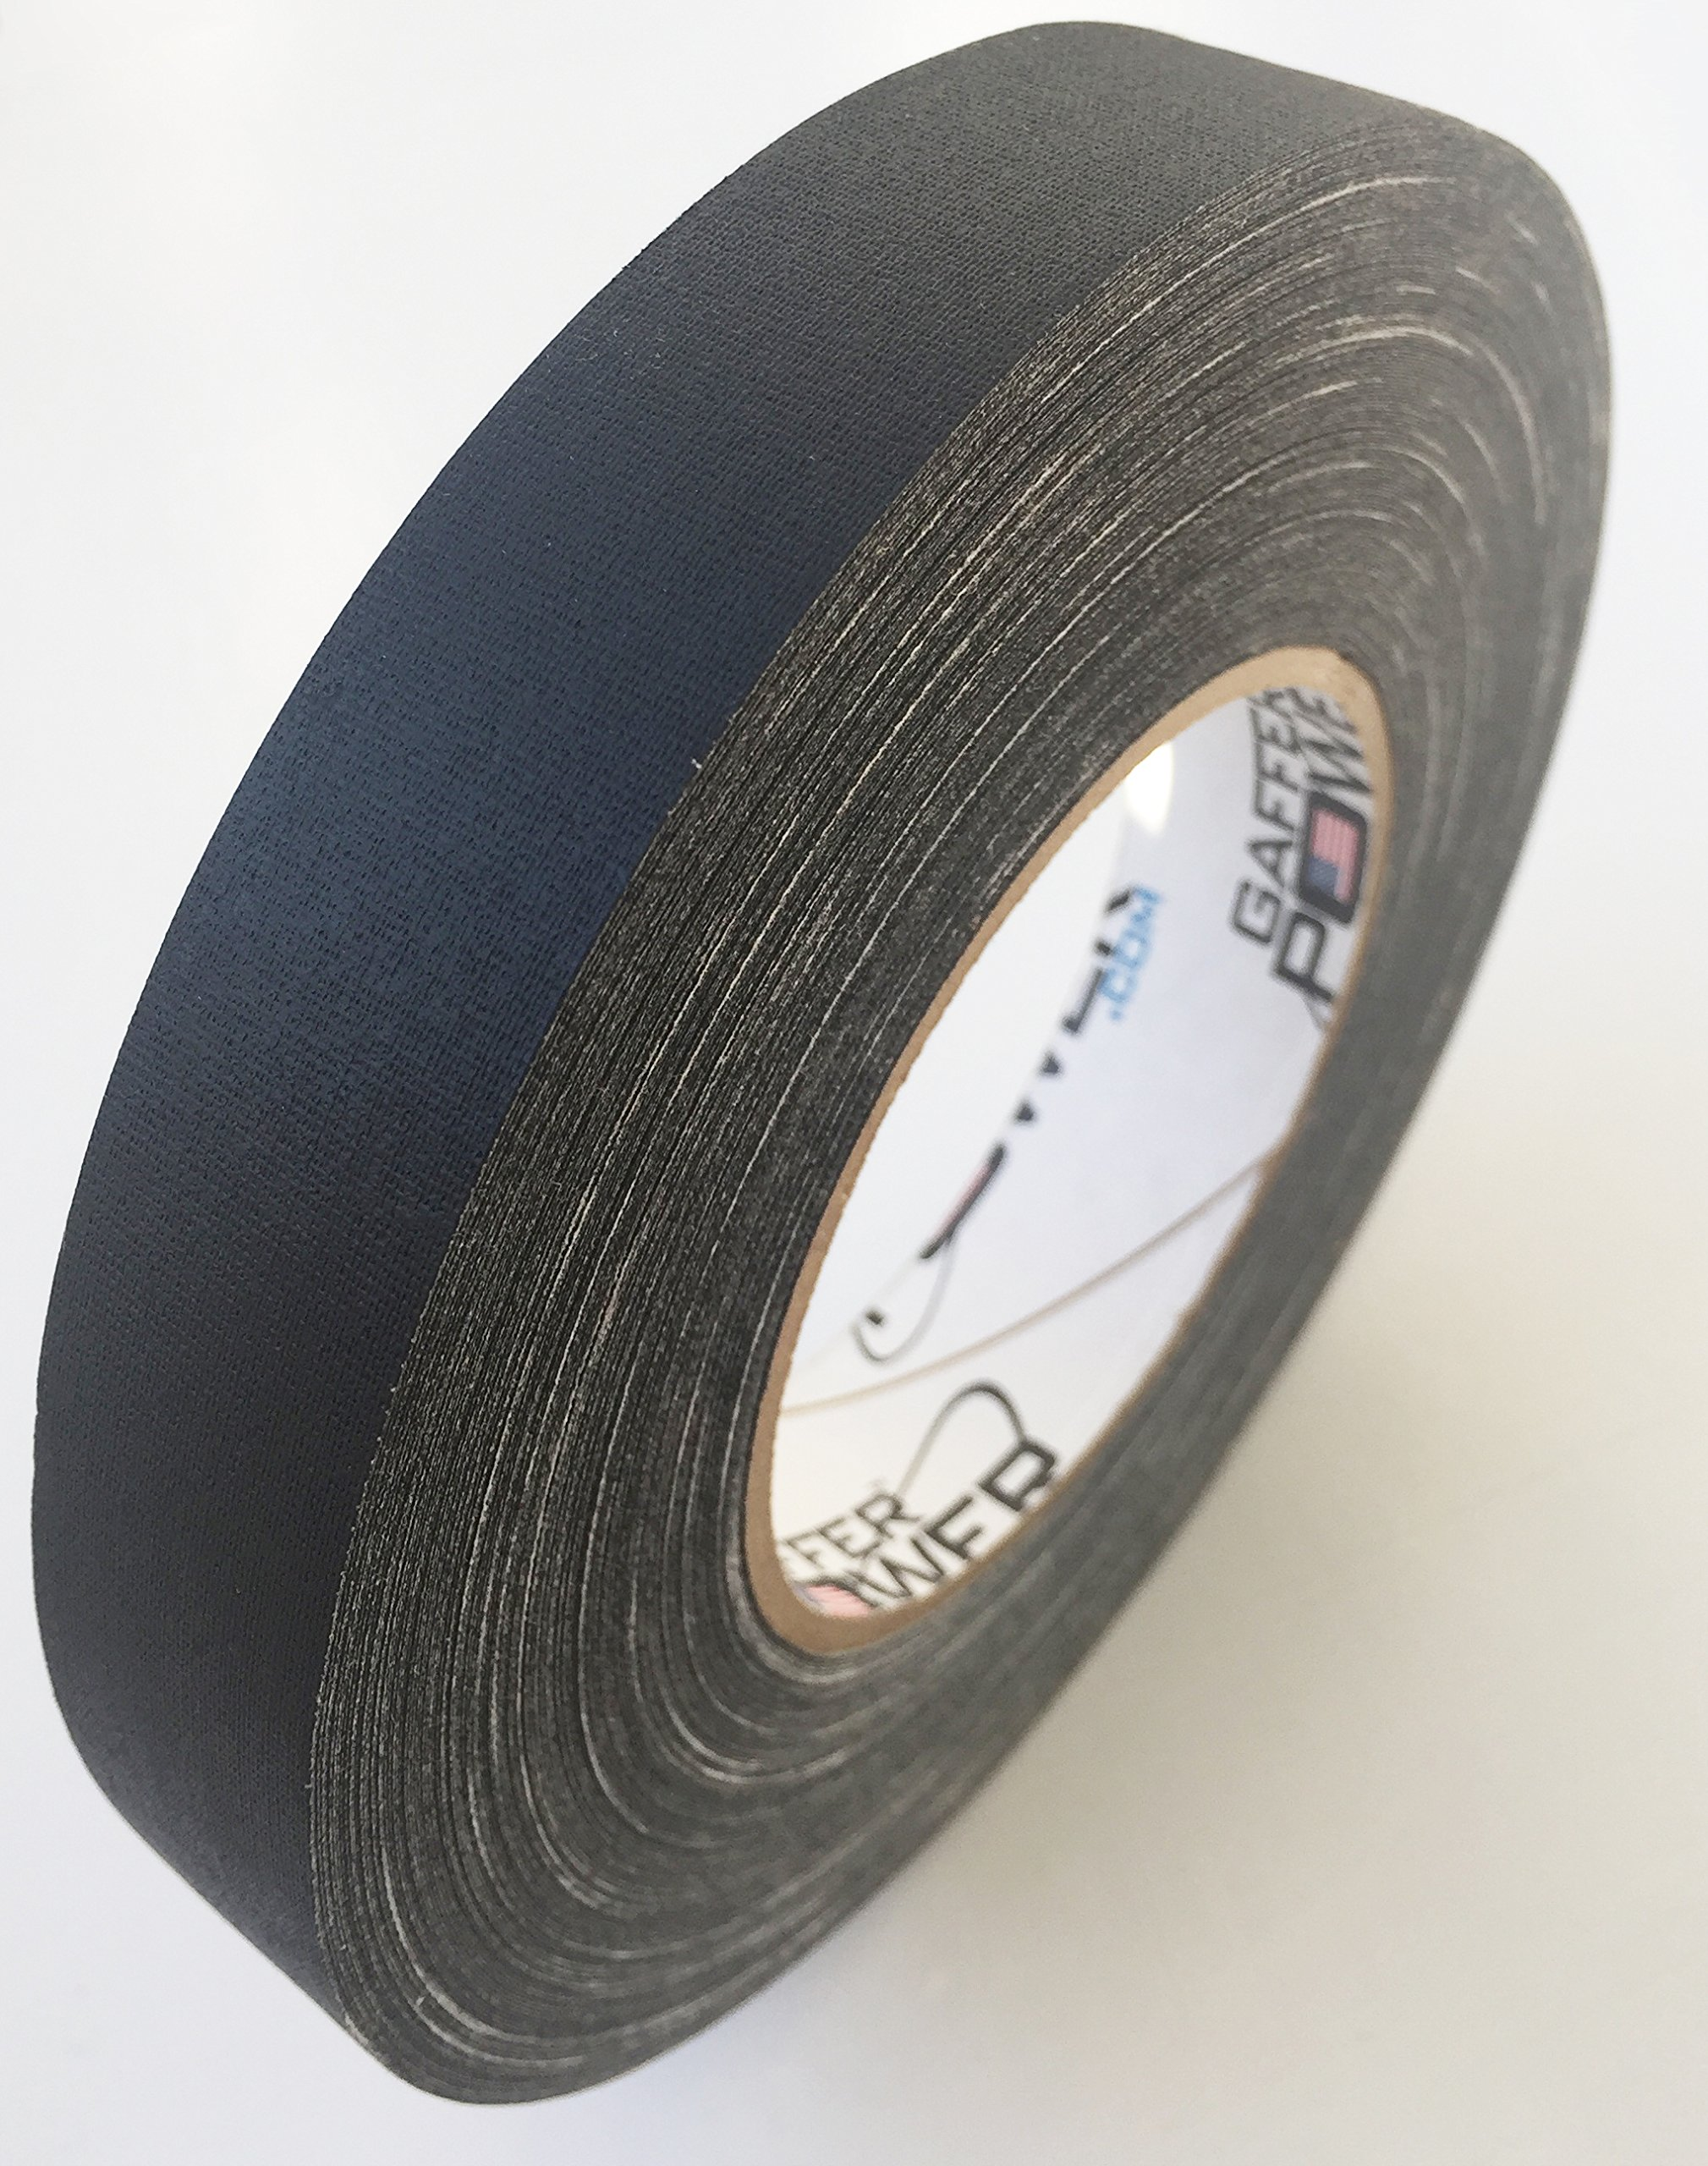 Professional Premium Grade Gaffer Tape - BLACK 1 In x 60 Yds - Heavy Duty Pro Gaff Tape - Secures Cables, Holds Down Wires Leaves No Sticky Residue Easy to Tear, Multipurpose, Better Than Duct Tape by Gaffer Power (Image #7)